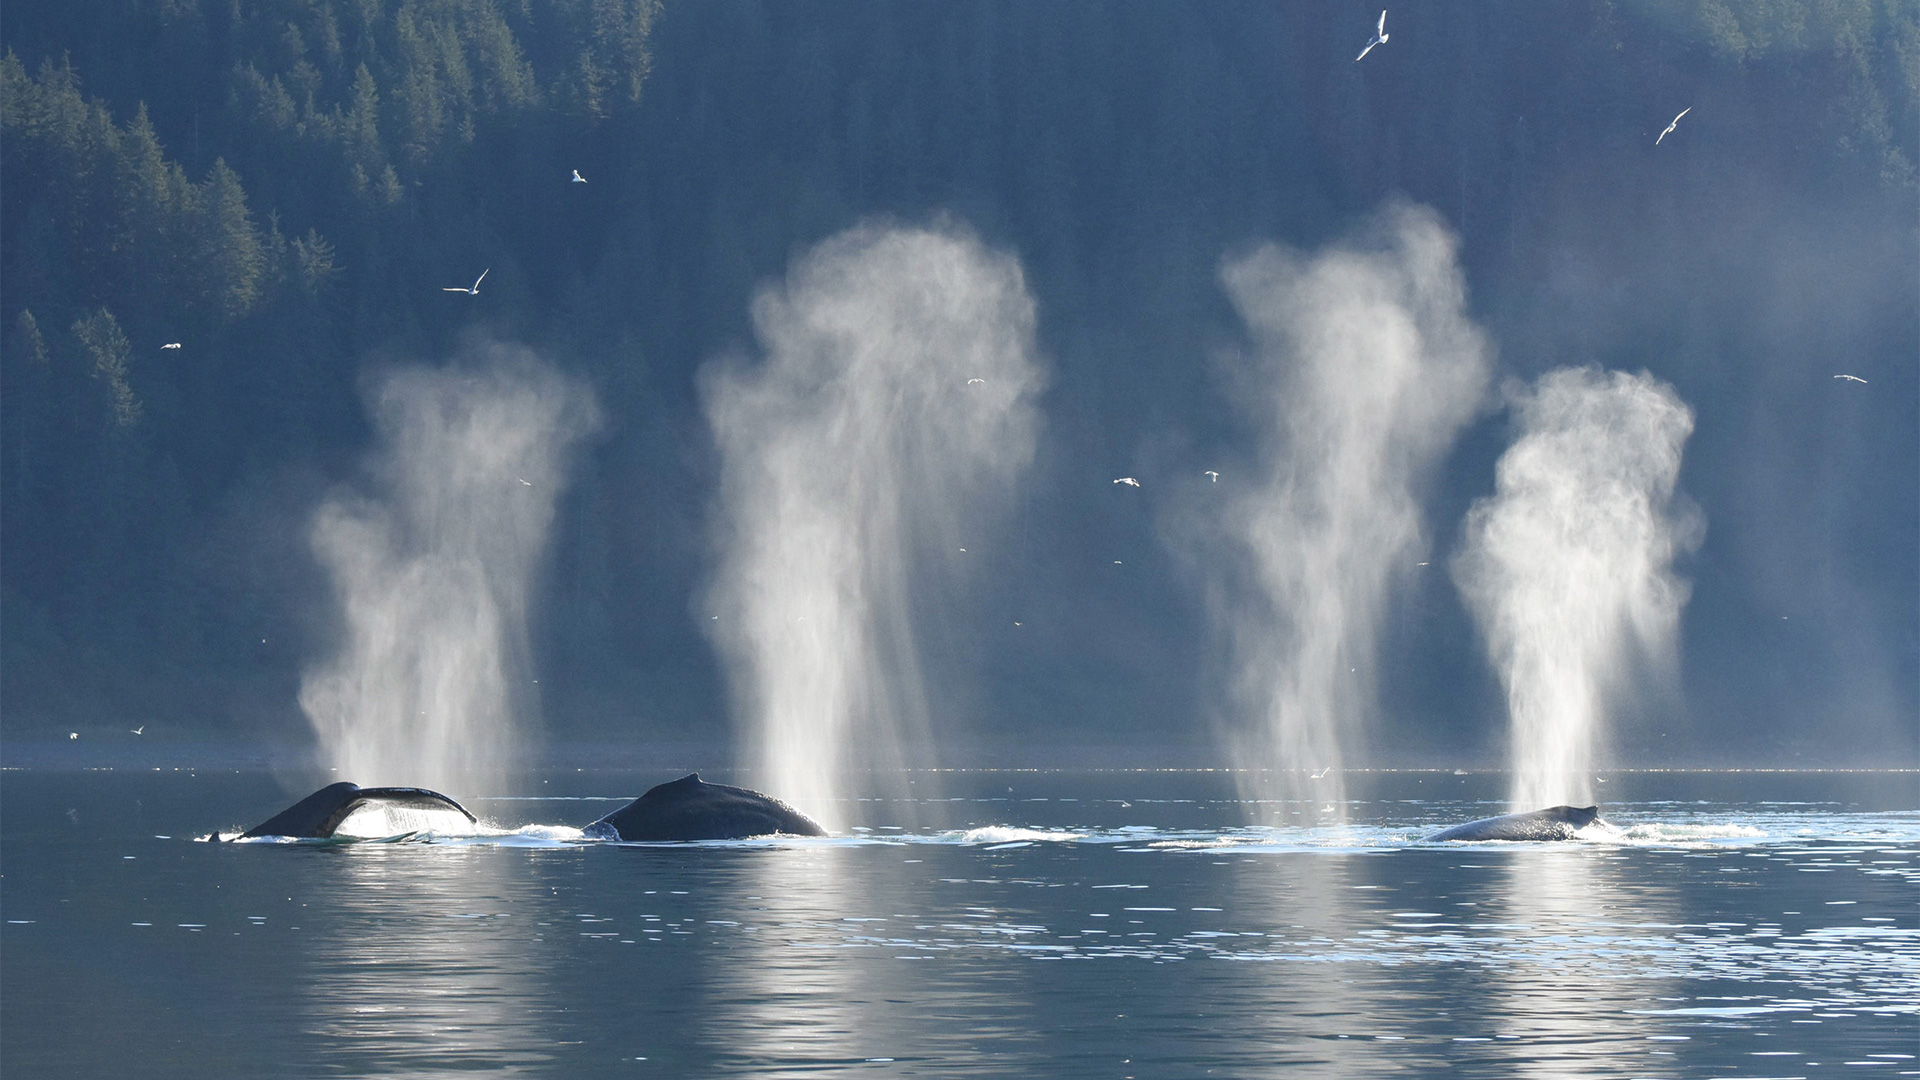 A group of humpback whales feeding together just outside Glacier Bay, Alaska.